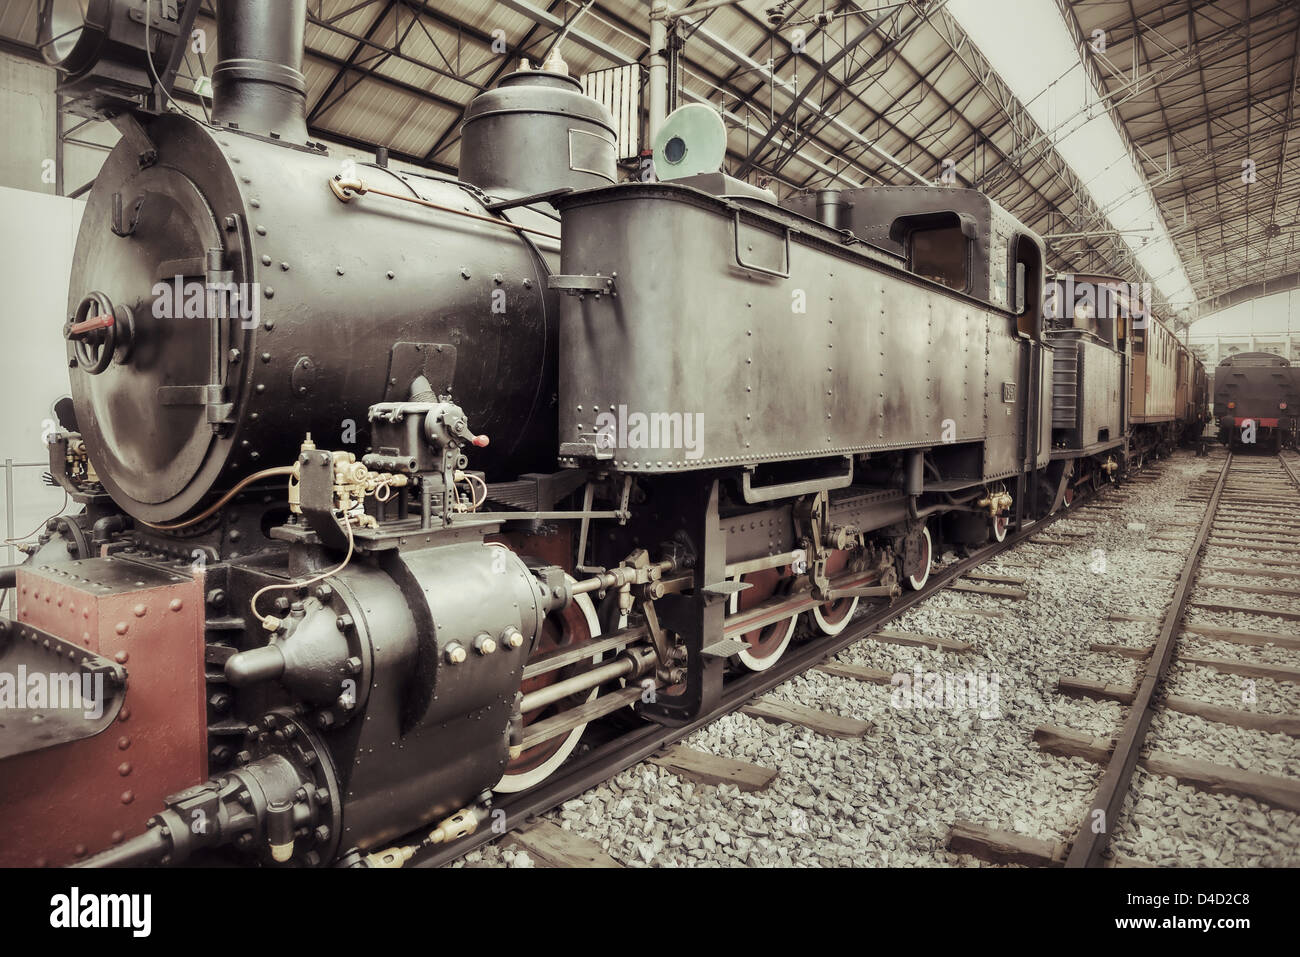 Old retro steam train locomotive in station - Stock Image